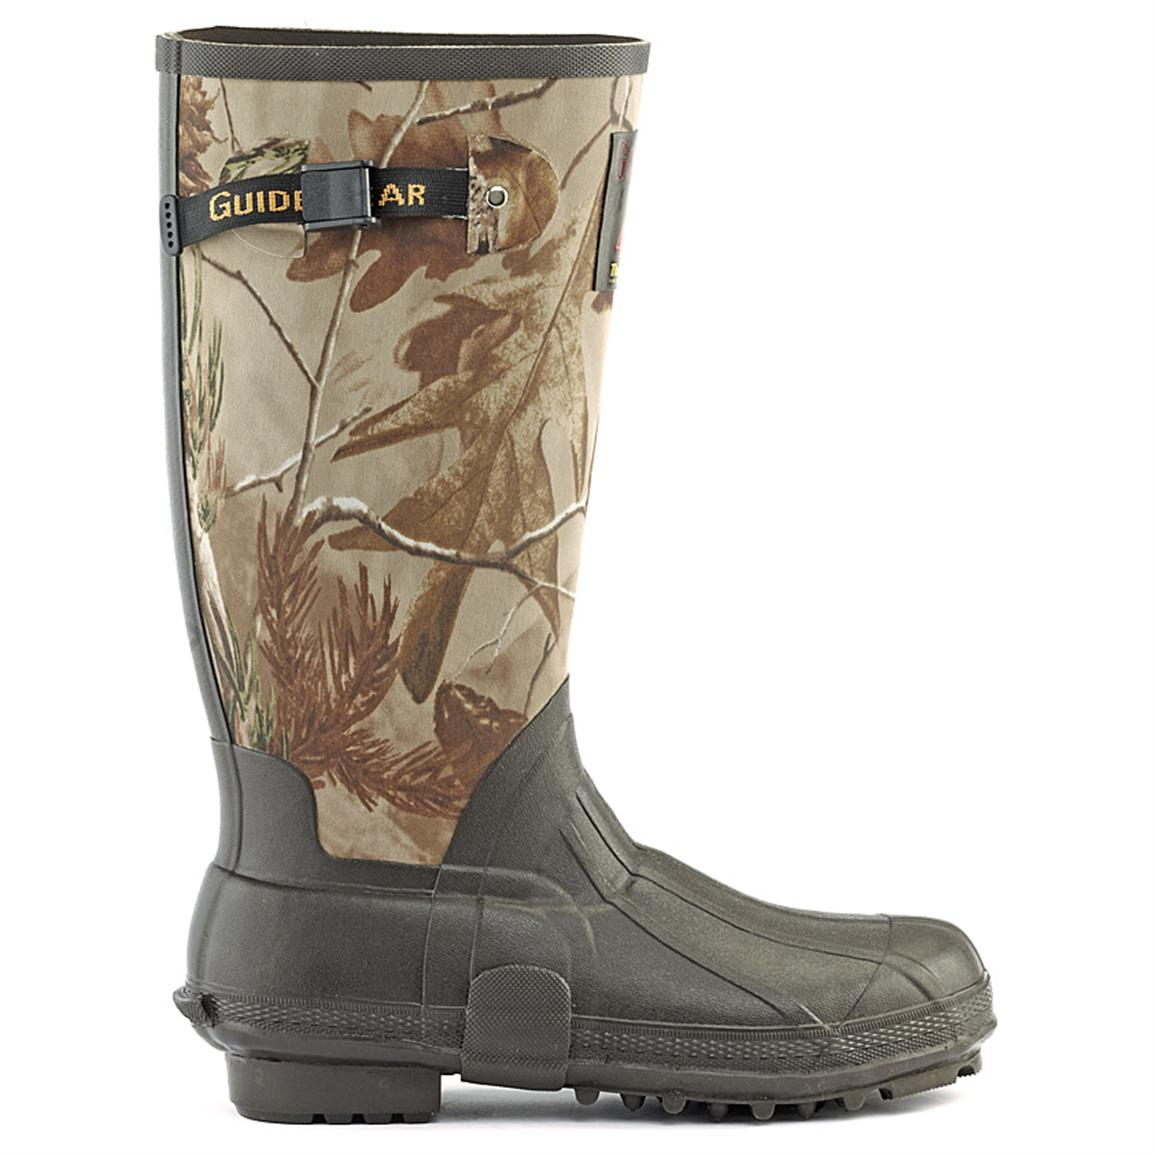 Realtree AP pattern